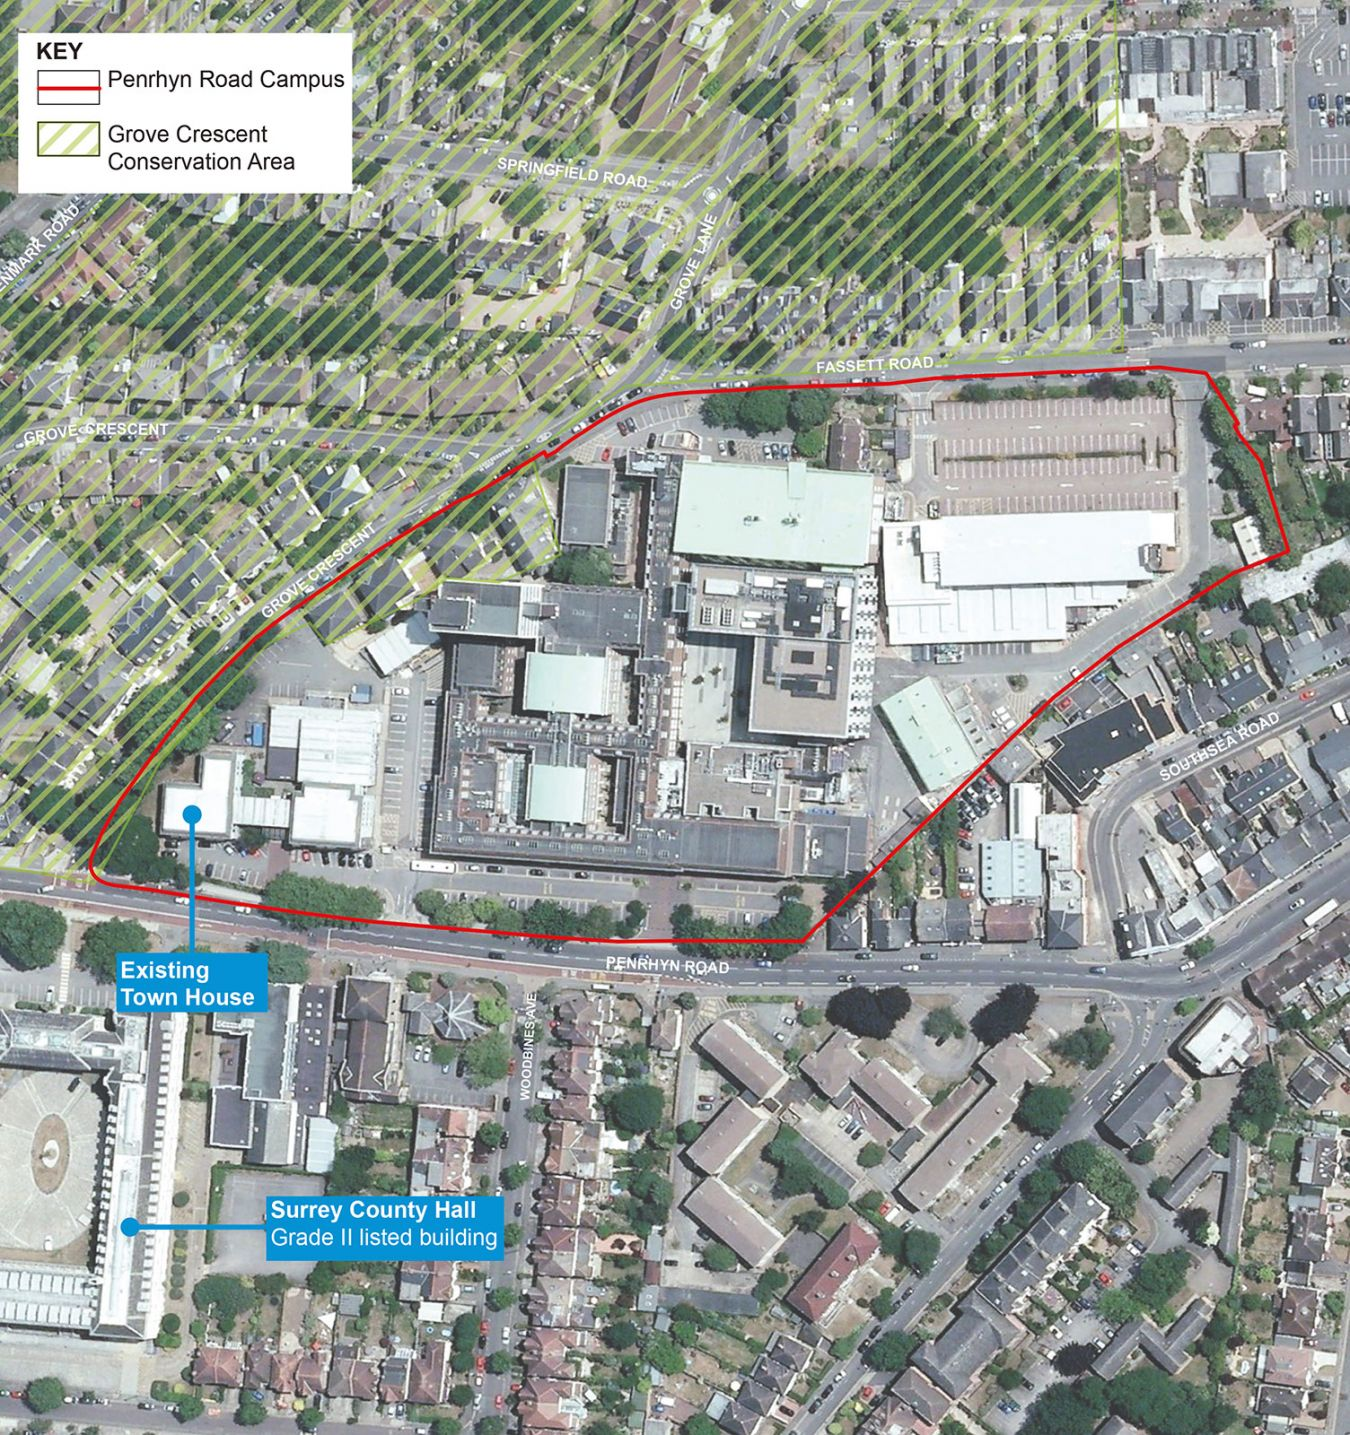 Penrhyn Road campus and its surroundings